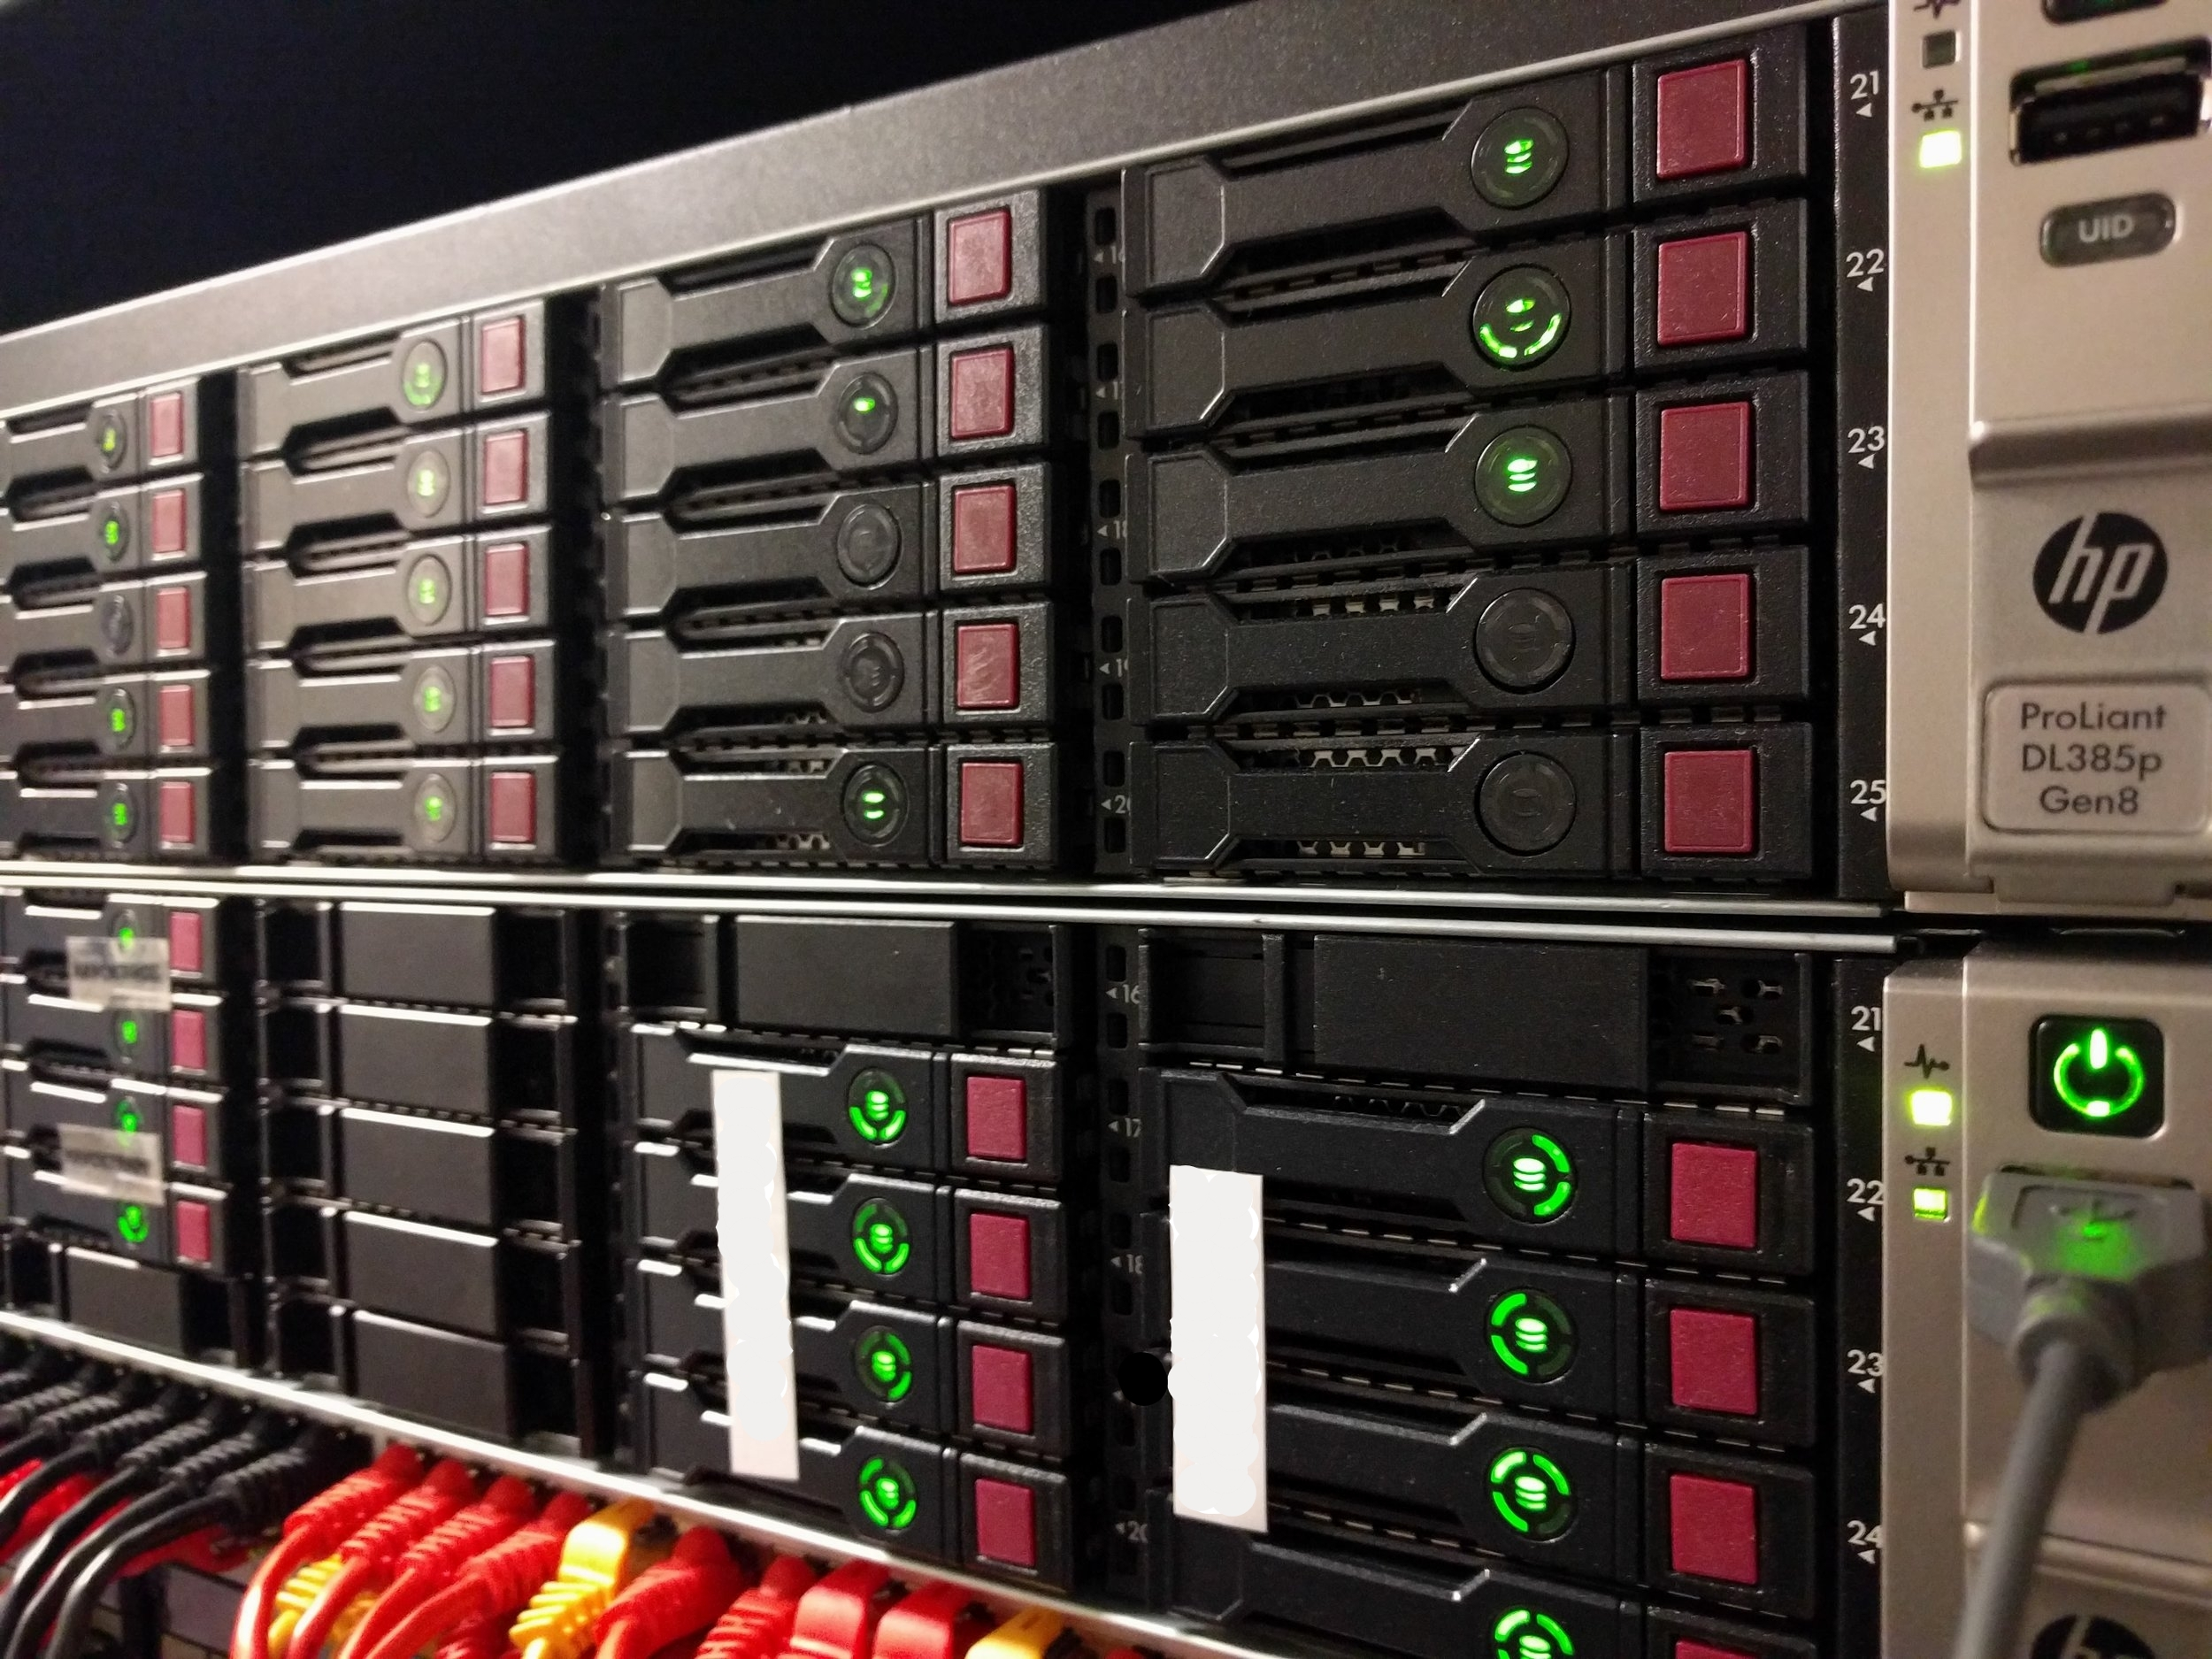 Data Management& Backup Solutions - Your company's backup and data management systems are crucial for maintaining stability and preventing data, productivity, and financial losses. X-Act maintains a clean record of zero data-breach incidents for our systems and clients.